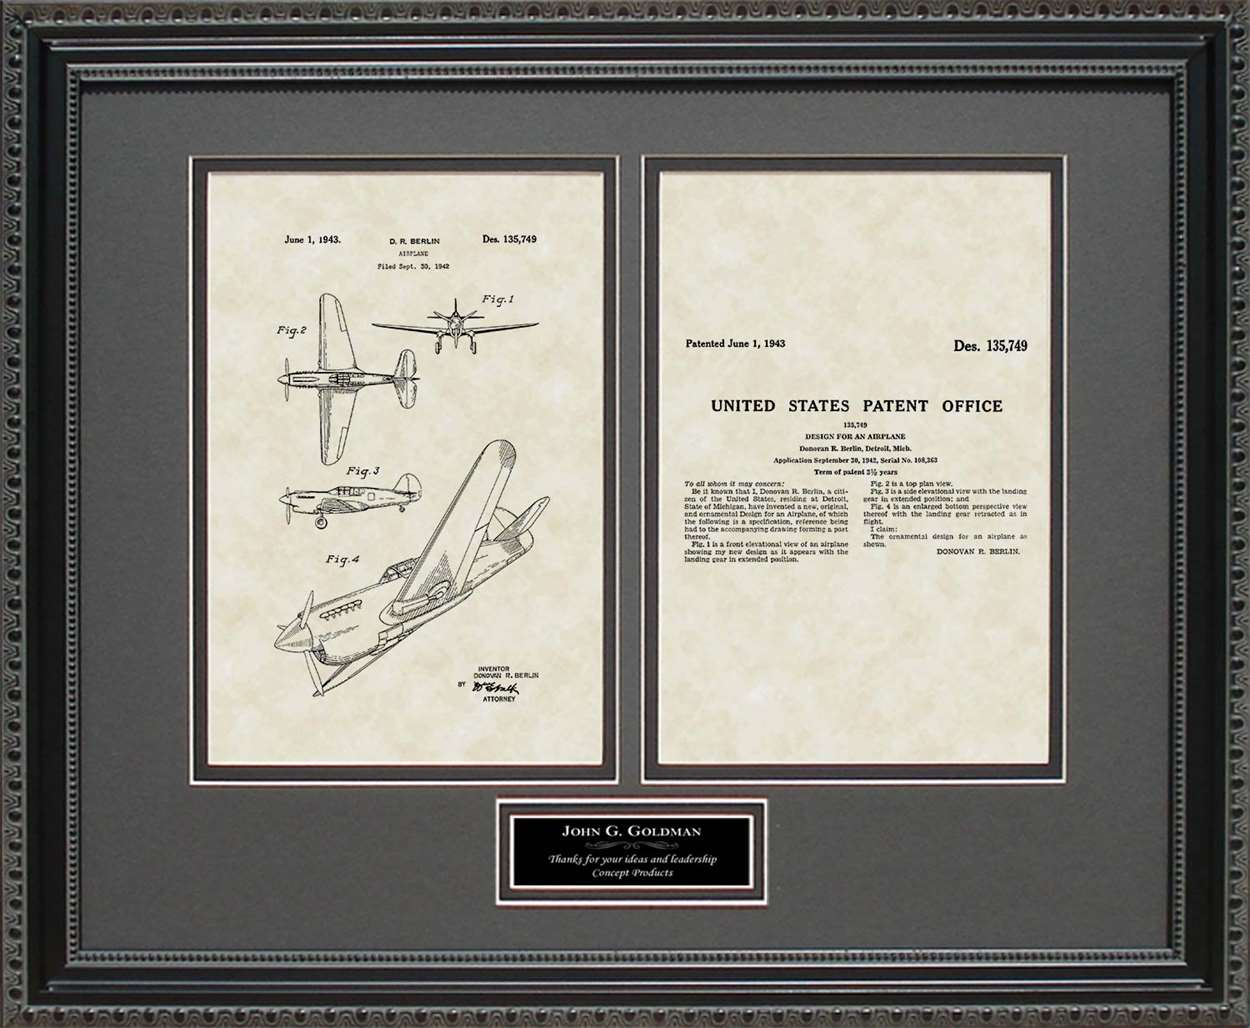 Personalized P-41 Aircraft Patent, Art & Copy, Berlin, 1943